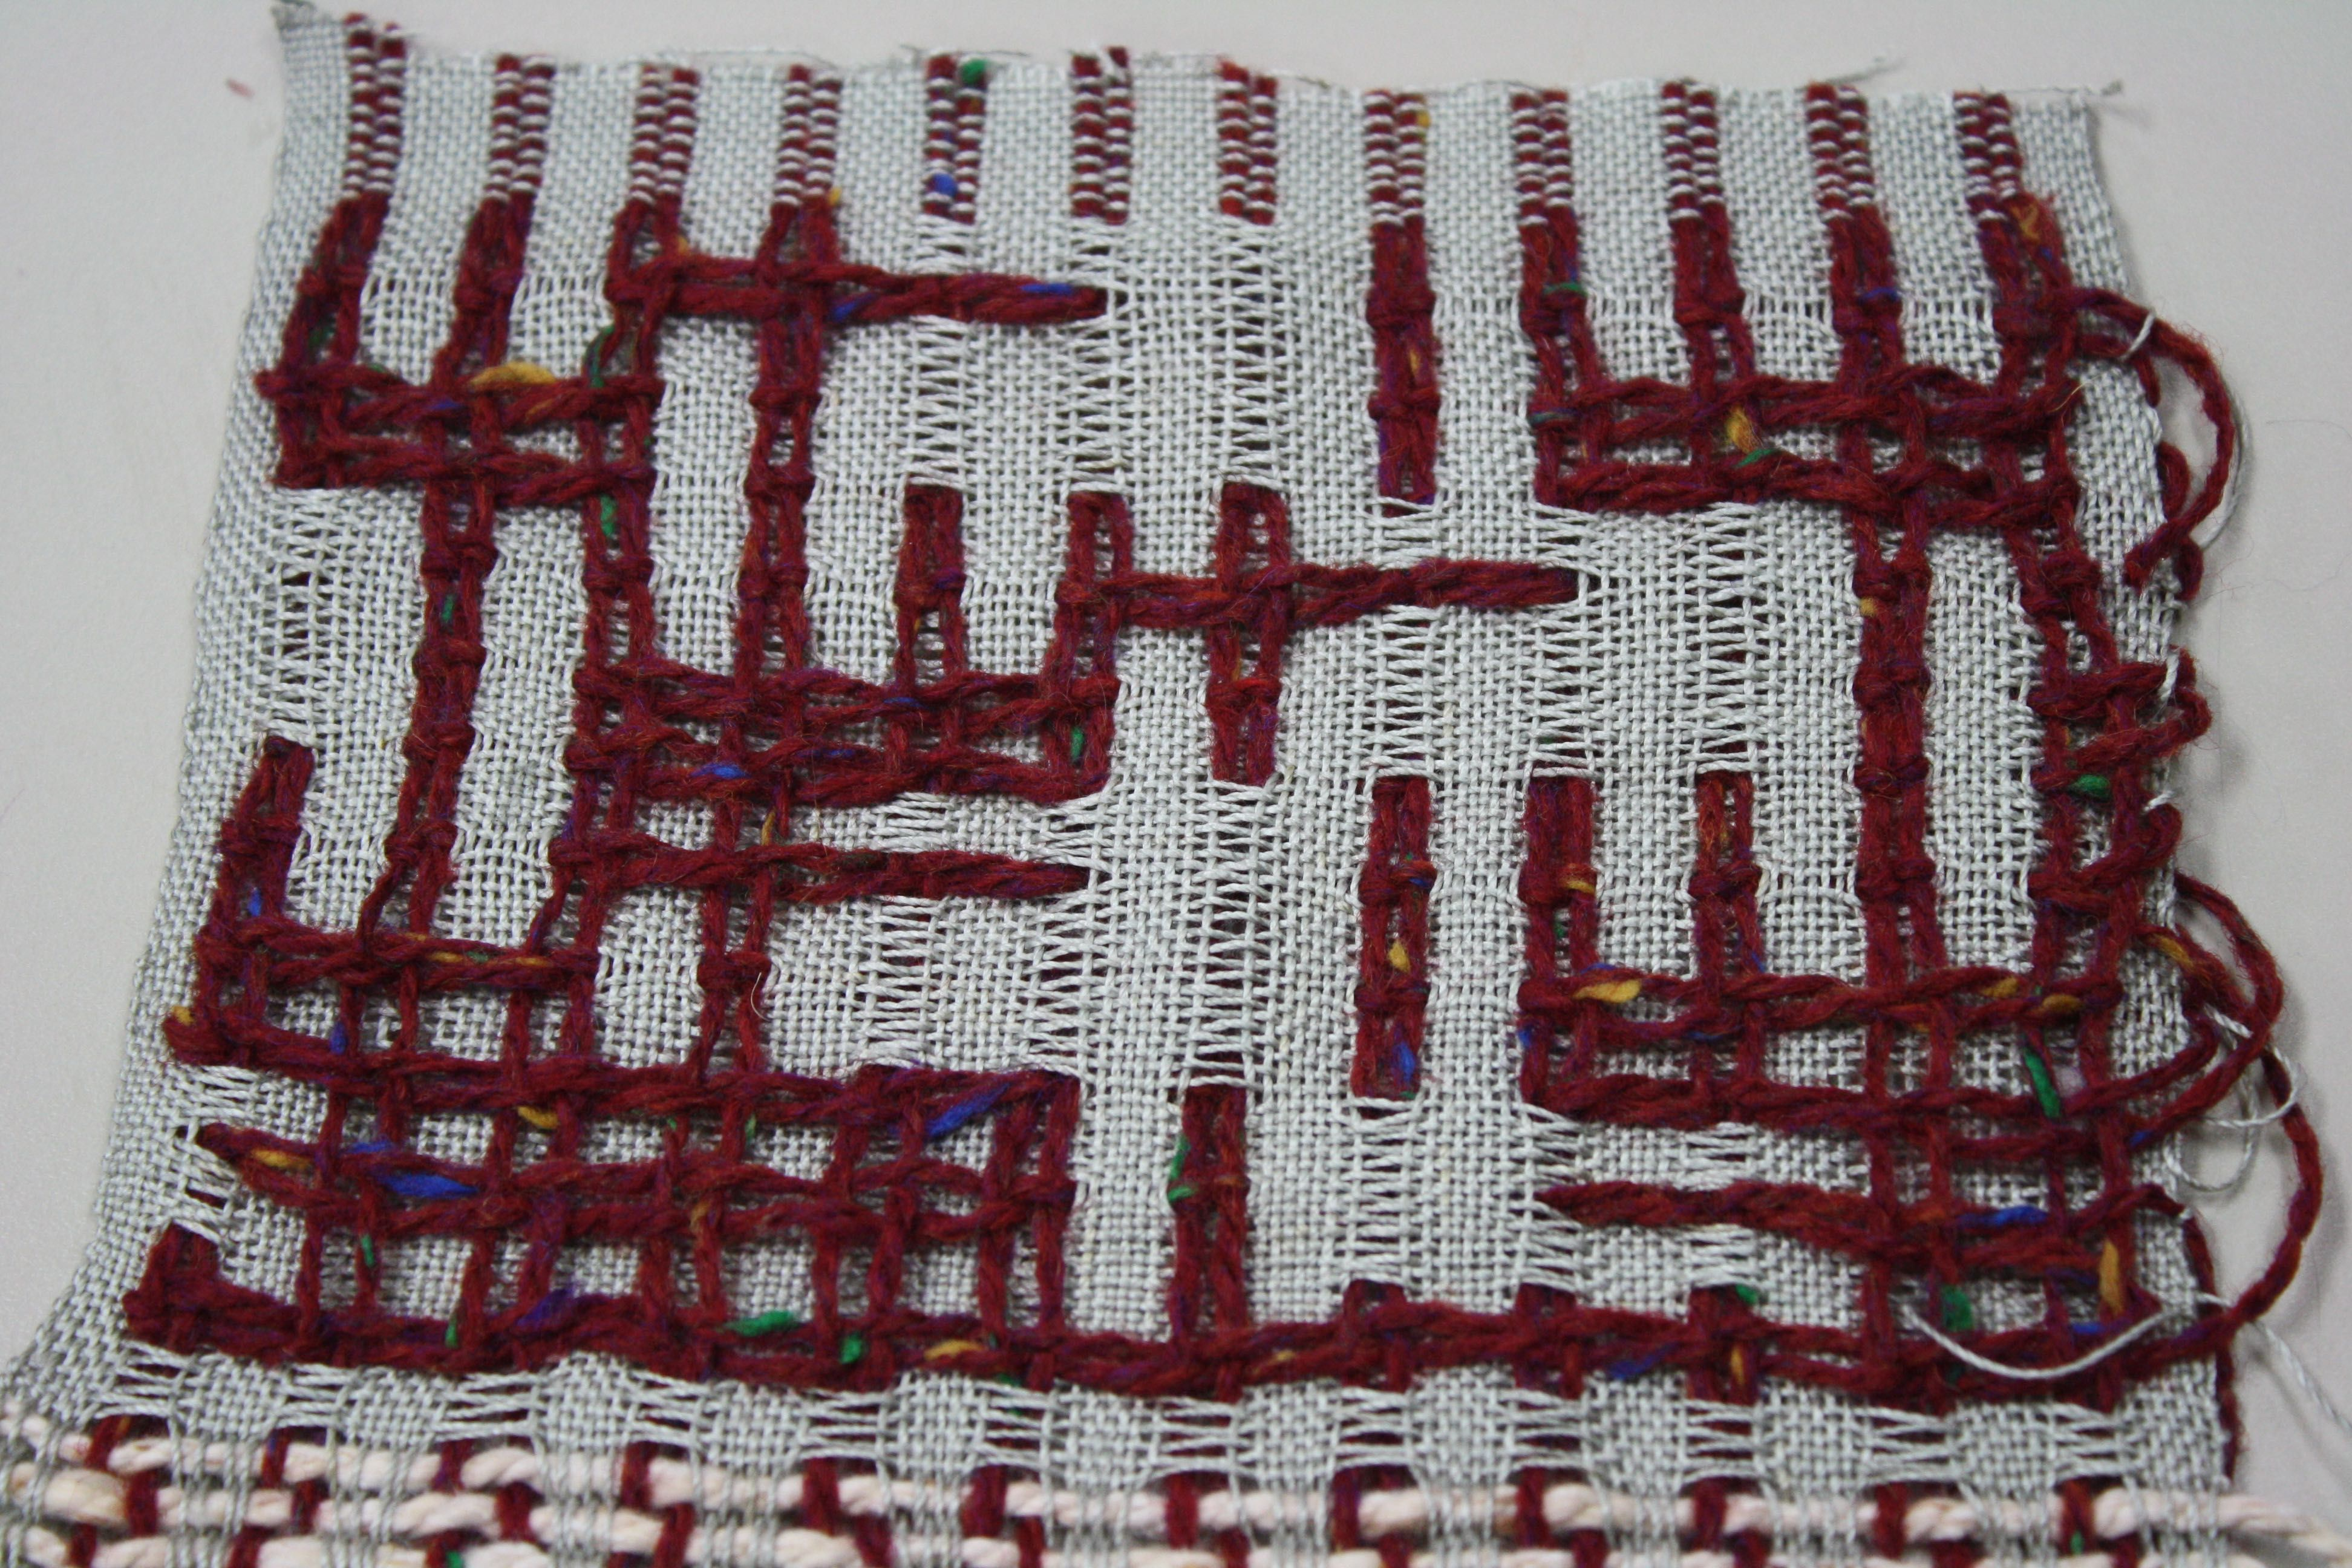 Deflected double weave sample before washing. 12 harness pattern. Warp and weft are 10/2 cotton and worsted weight wool.